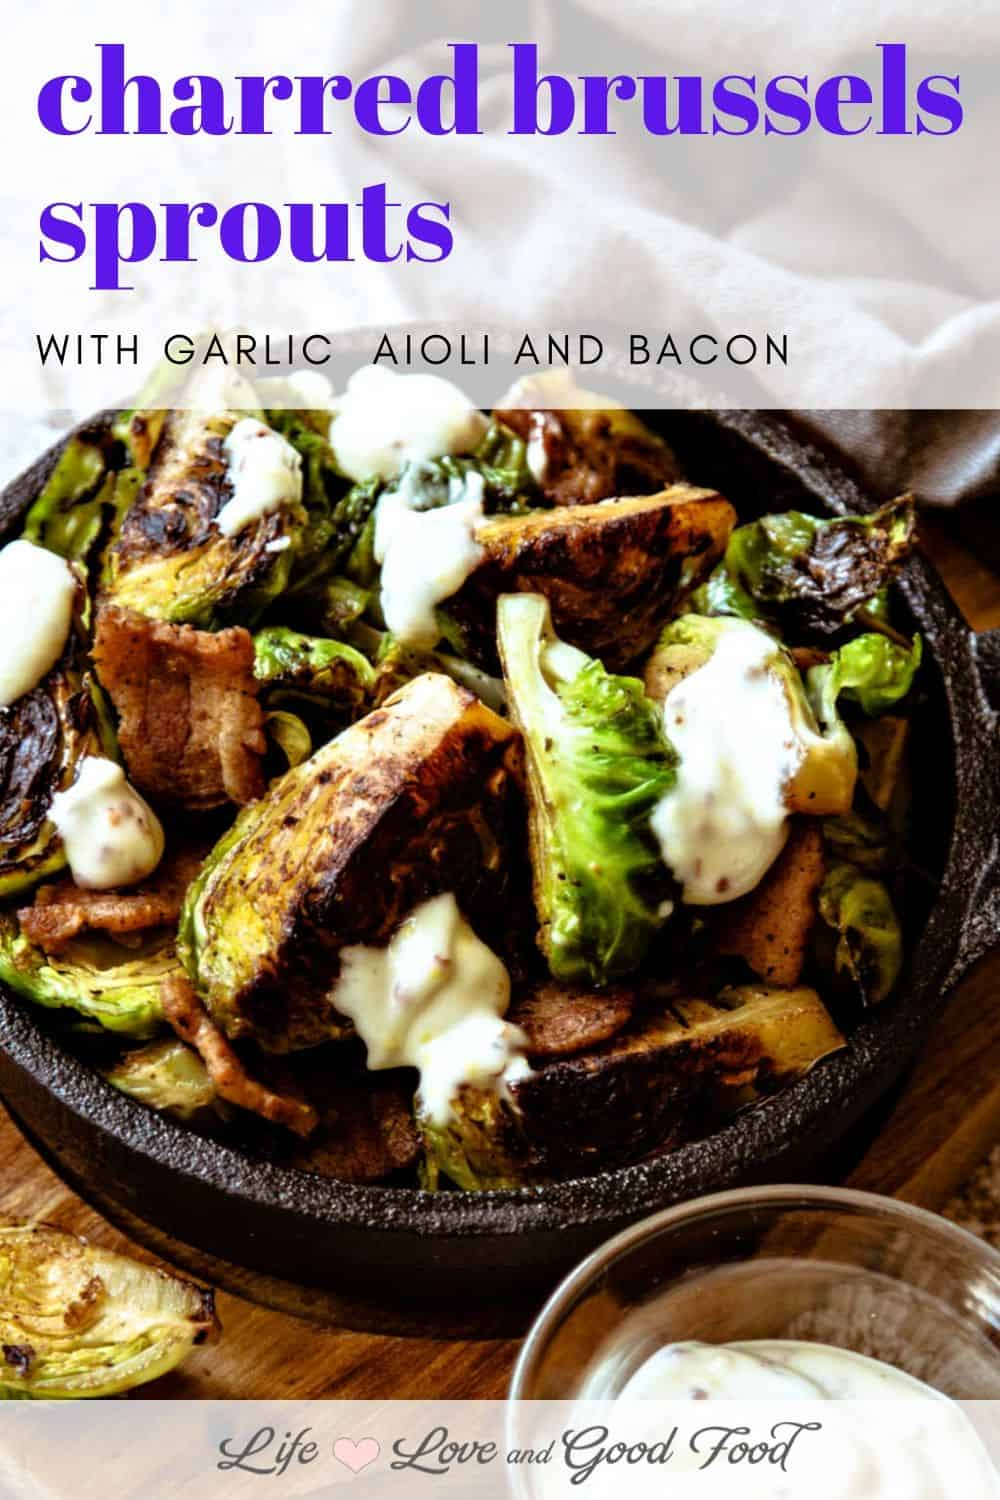 Cook Charred Brussels Sprouts with the cut side down in a hot cast iron skillet to create a buttery, toasty sear, then toss them with bacon and drizzle with zesty garlic aioli for an irresistible hot appetizer. OH MY YES!